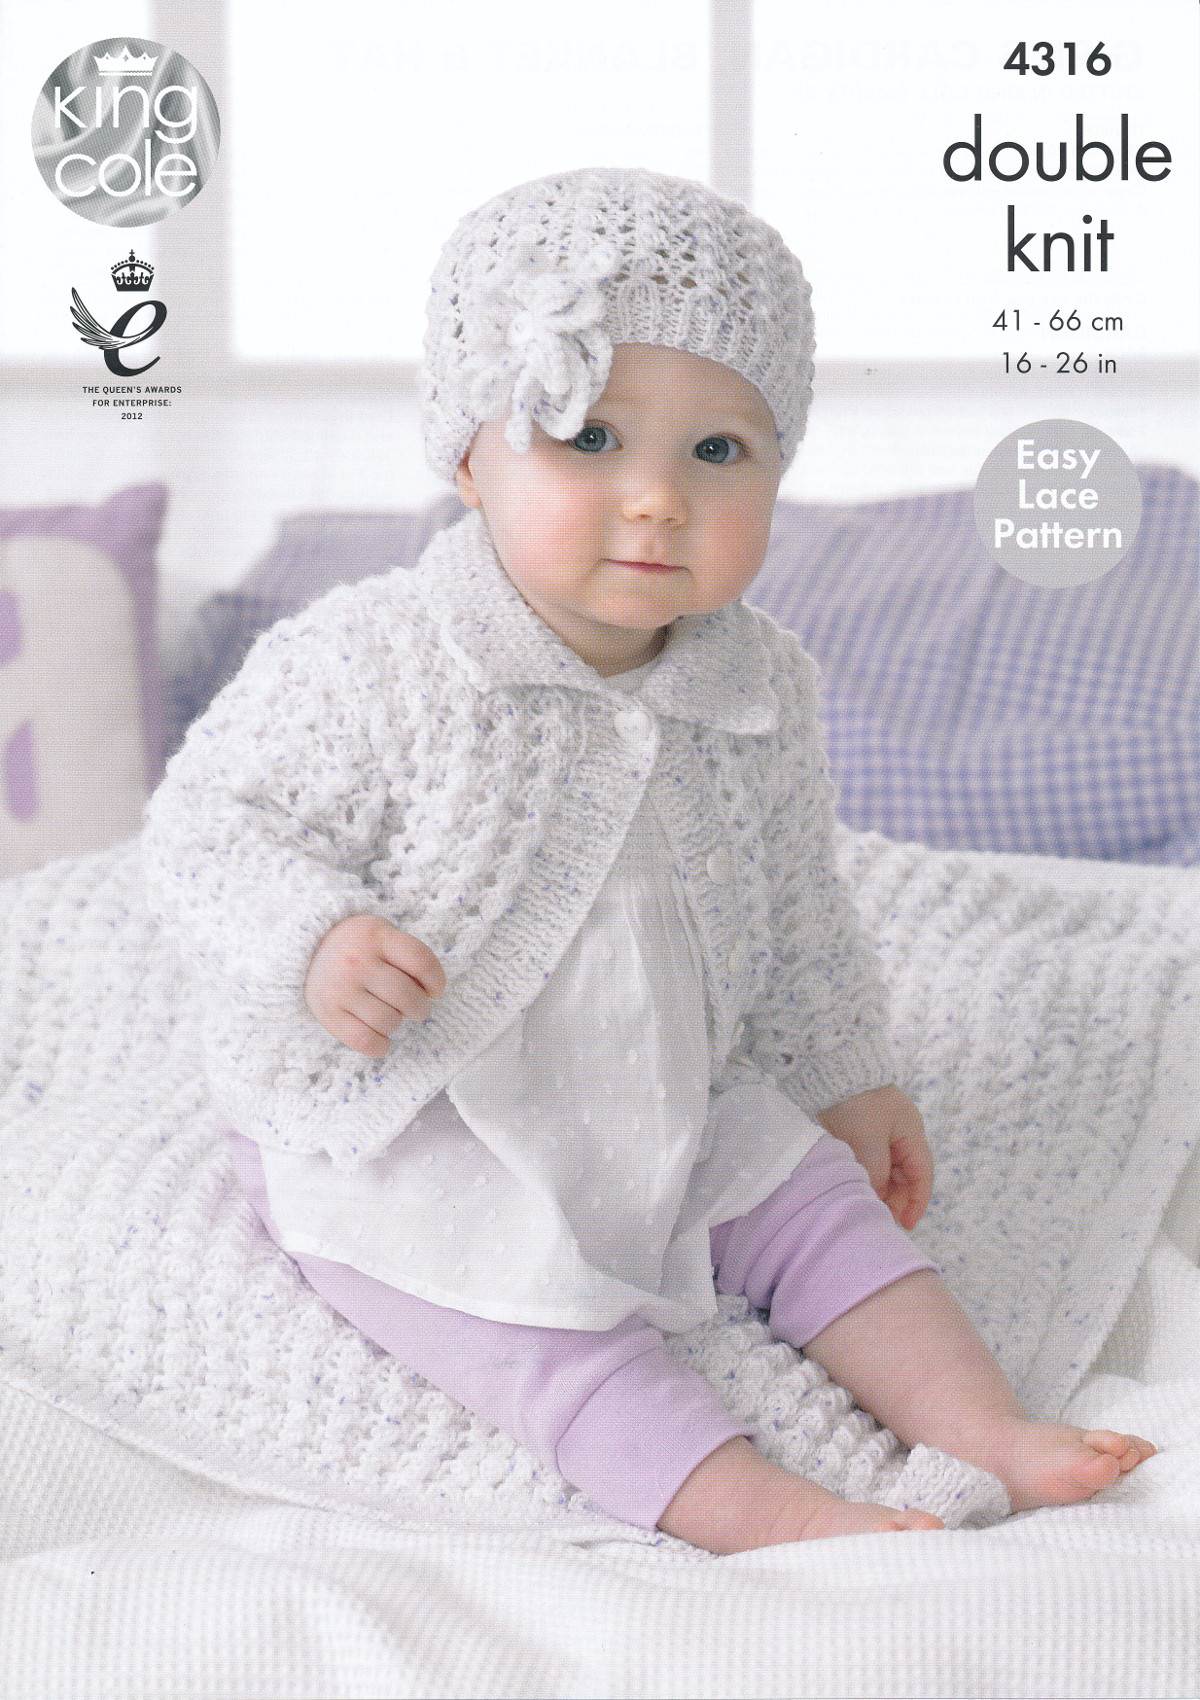 King Cole Double Knitting Pattern Baby Lace Cardigan Blanket Flower ...